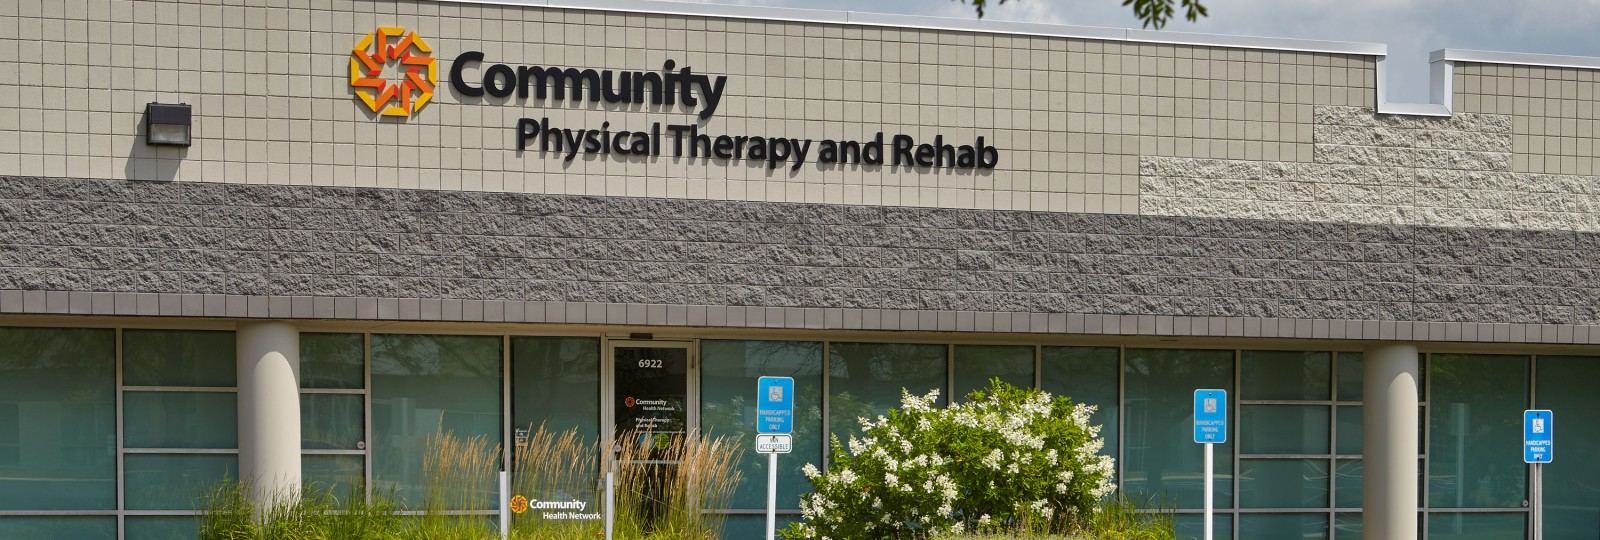 Physical Therapy and Rehab - Hillsdale